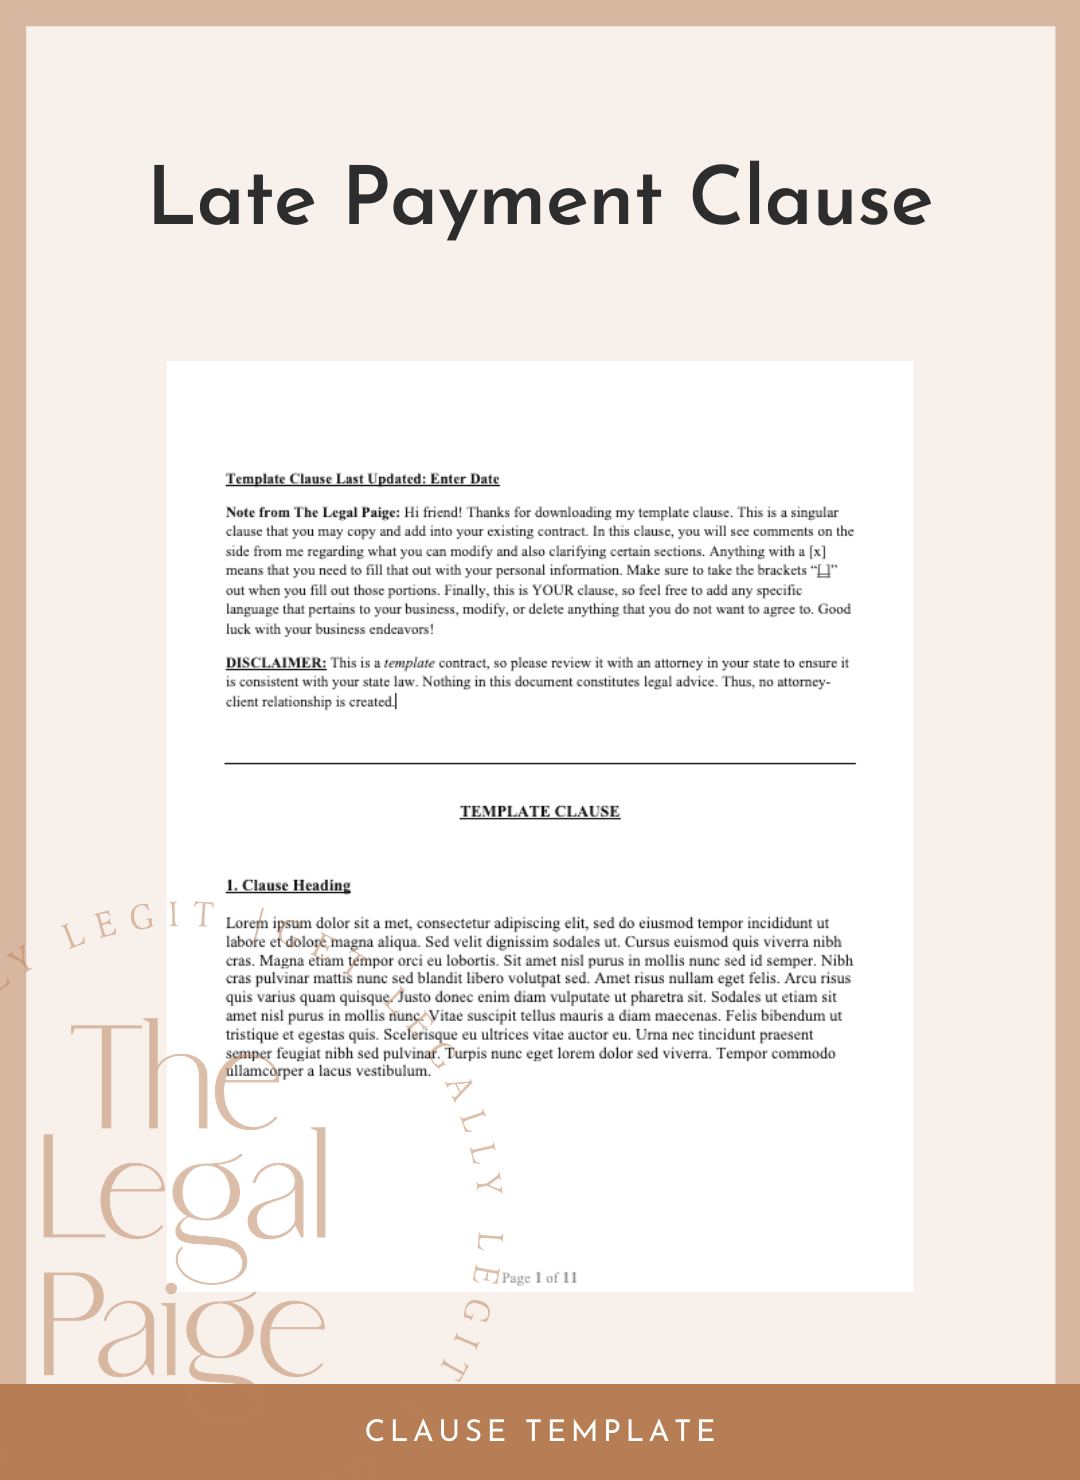 Late Payment Clause